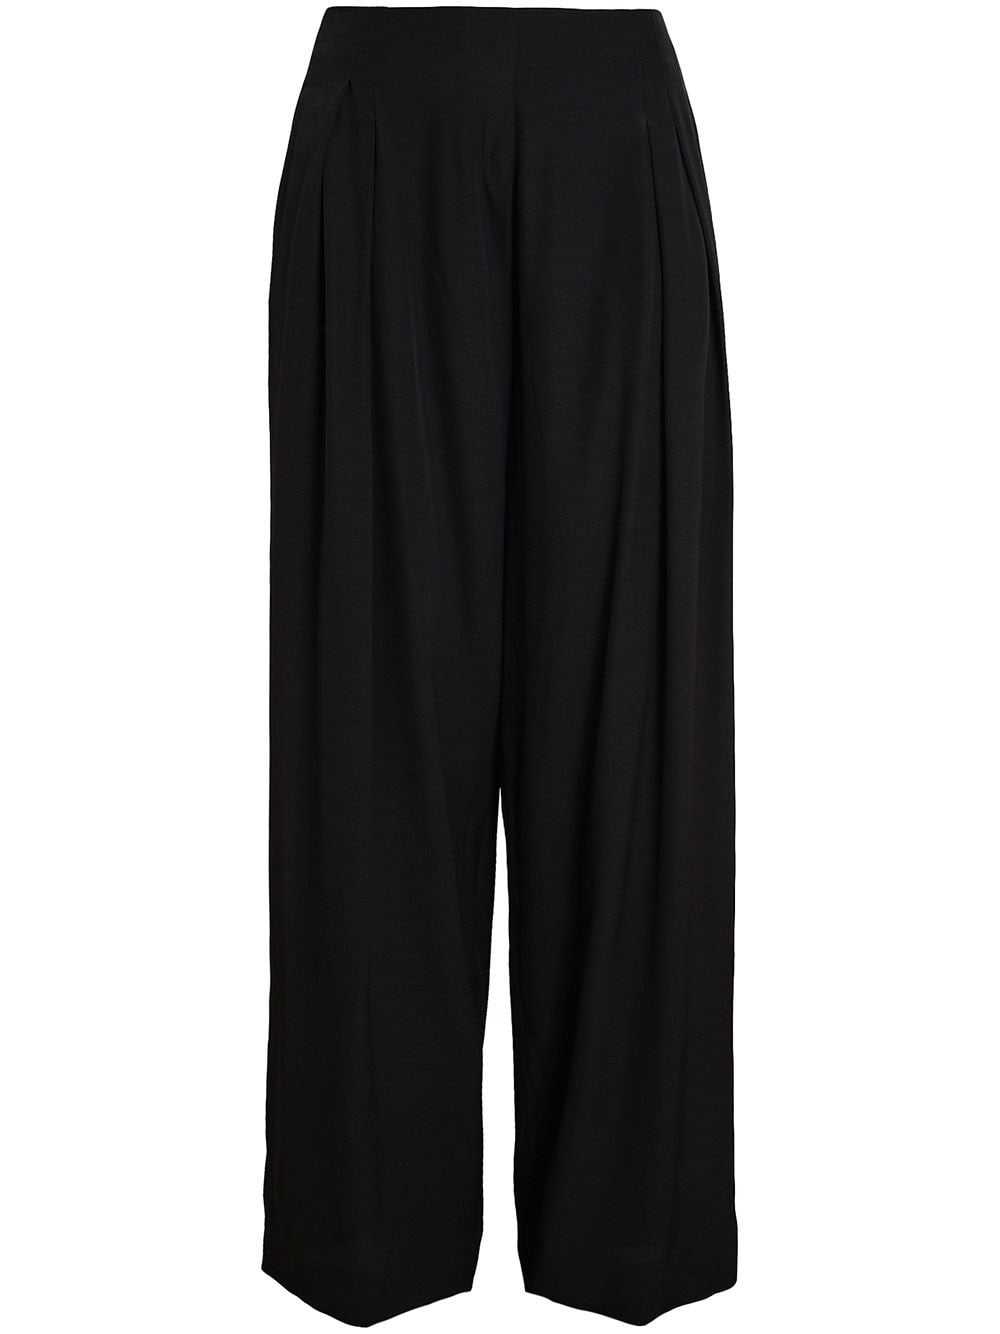 J.W. ANDERSON - Relaxed Silk Trousers 4